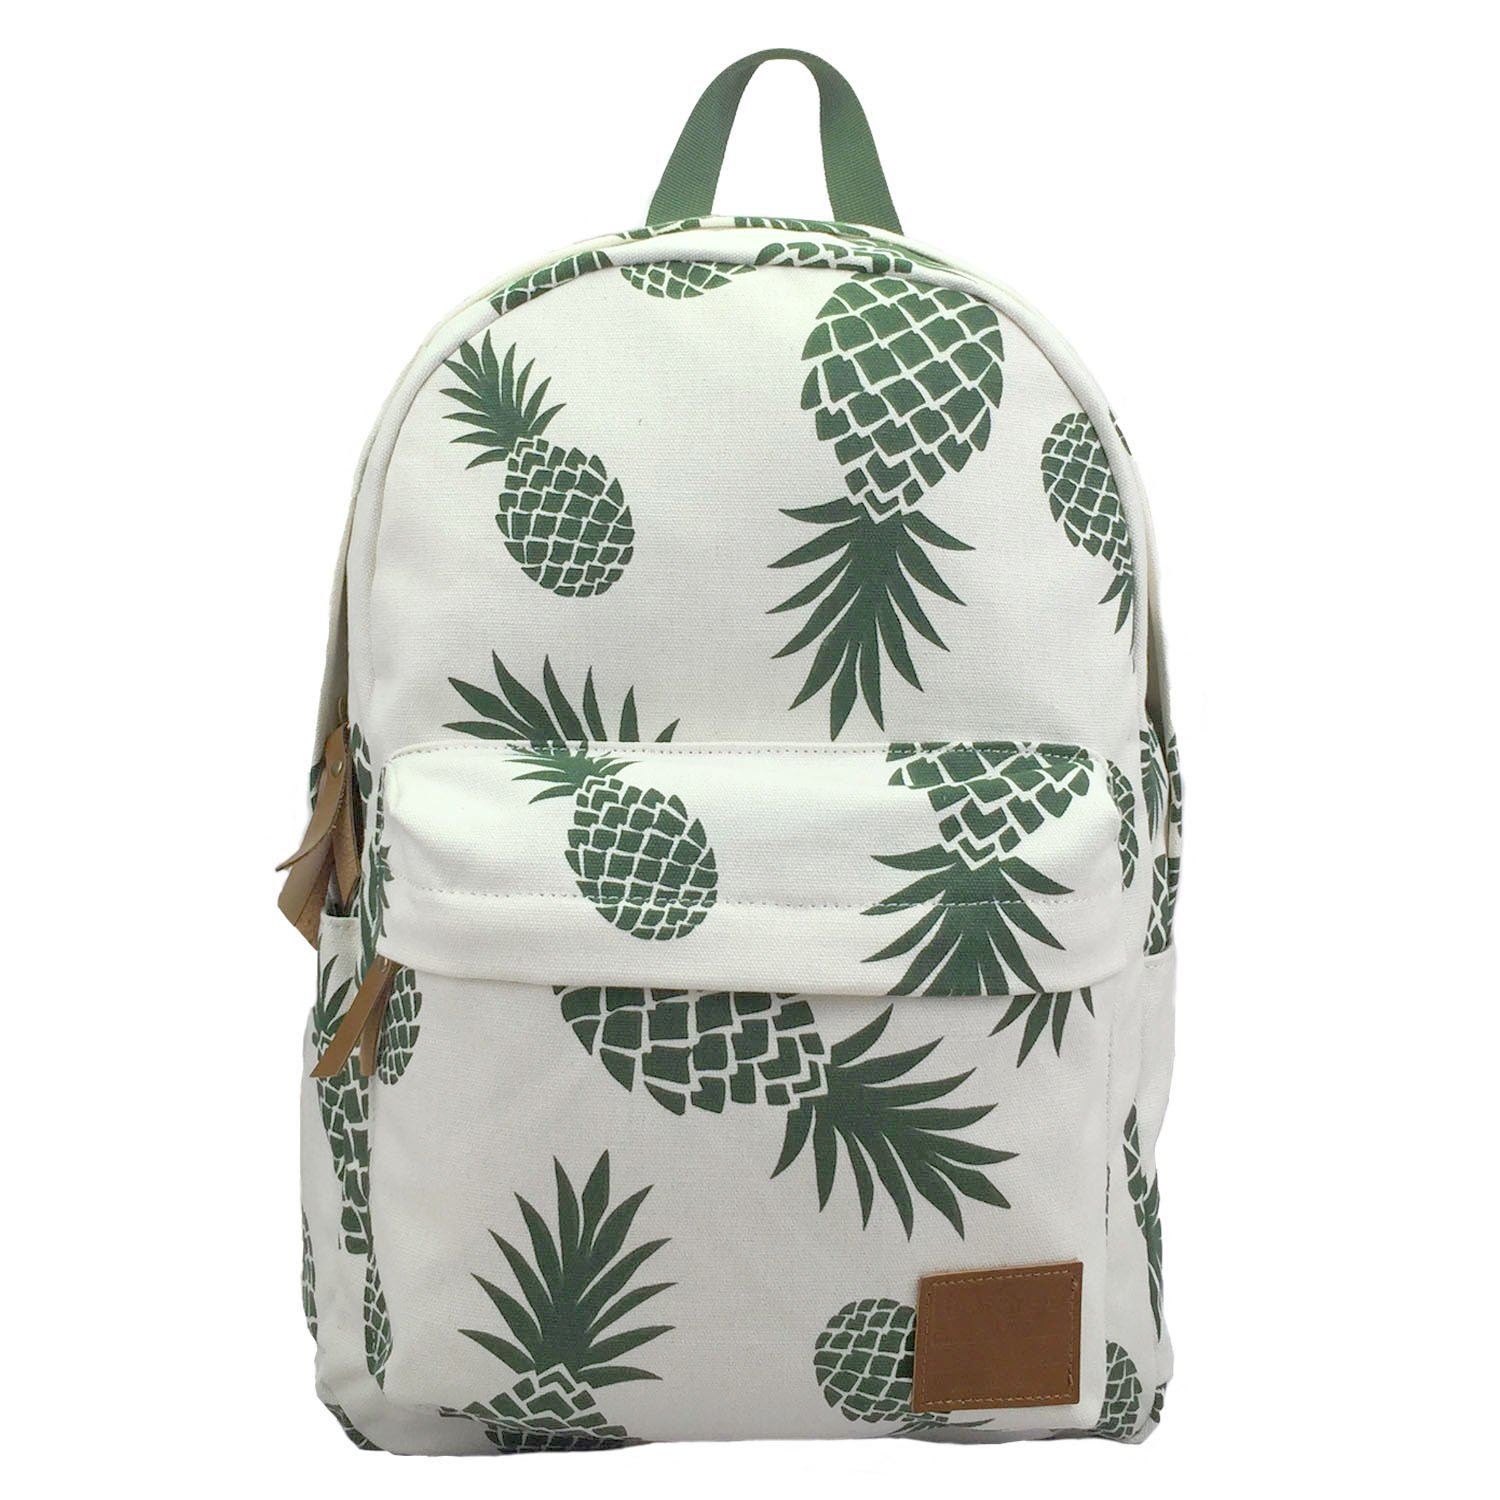 bd68cba34 Get Quotations · Backpacks Pineapple School Bookbag Cactus Daypack  Lightweight Canvas College Bags